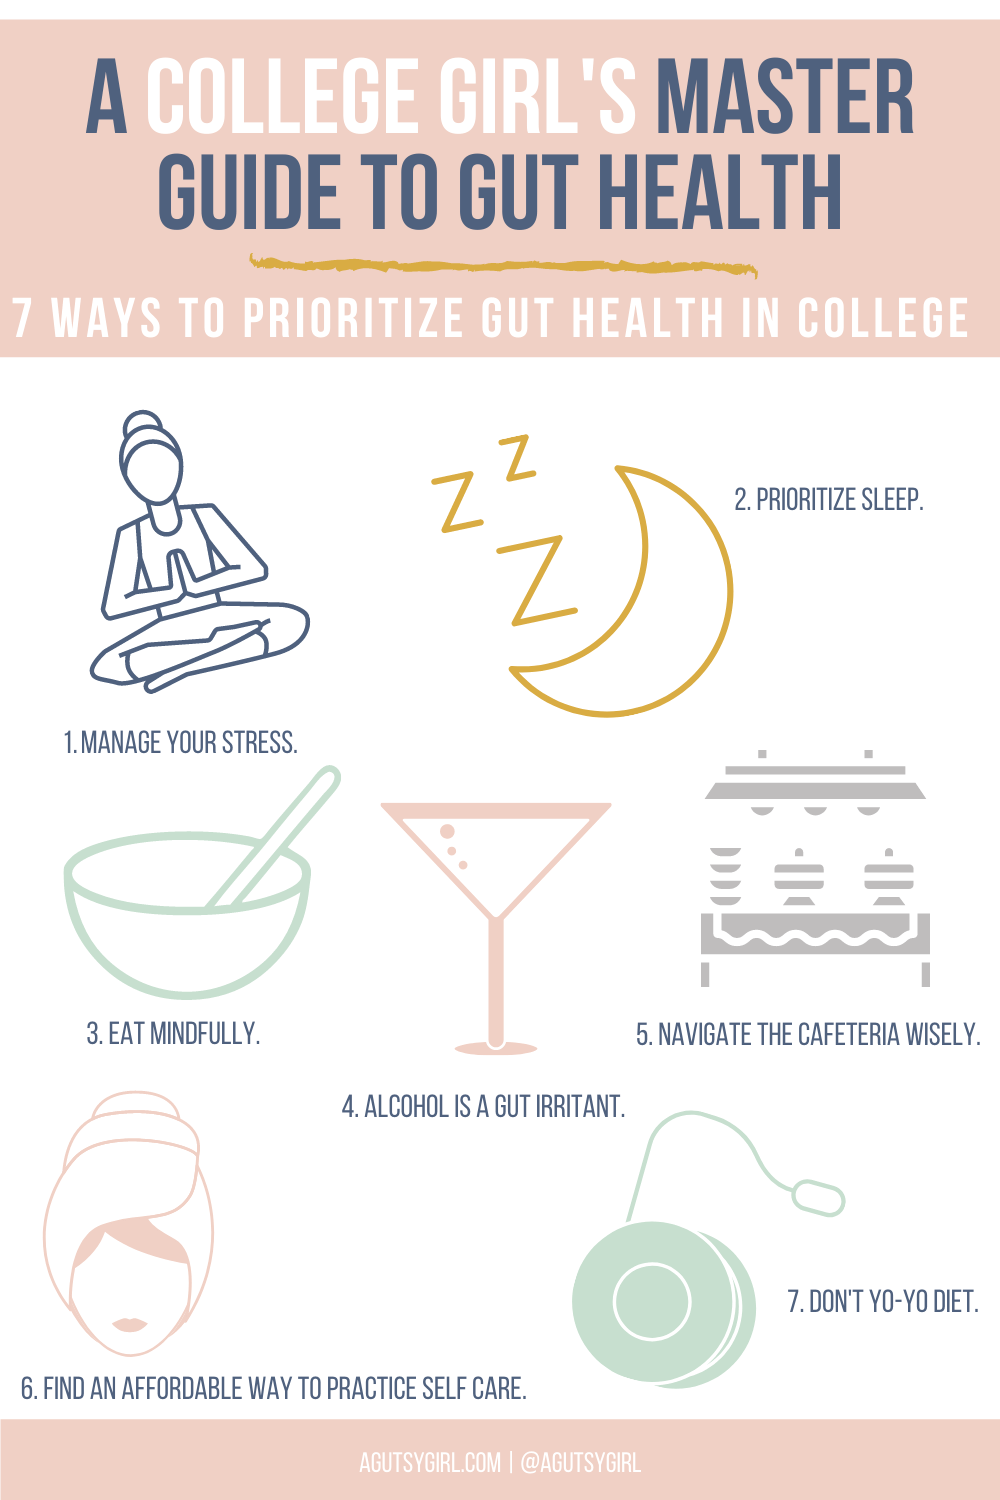 A College Girl's Master Guide to Gut Health agutsygirl.com #college #backtoschool #guthealth #dormlife